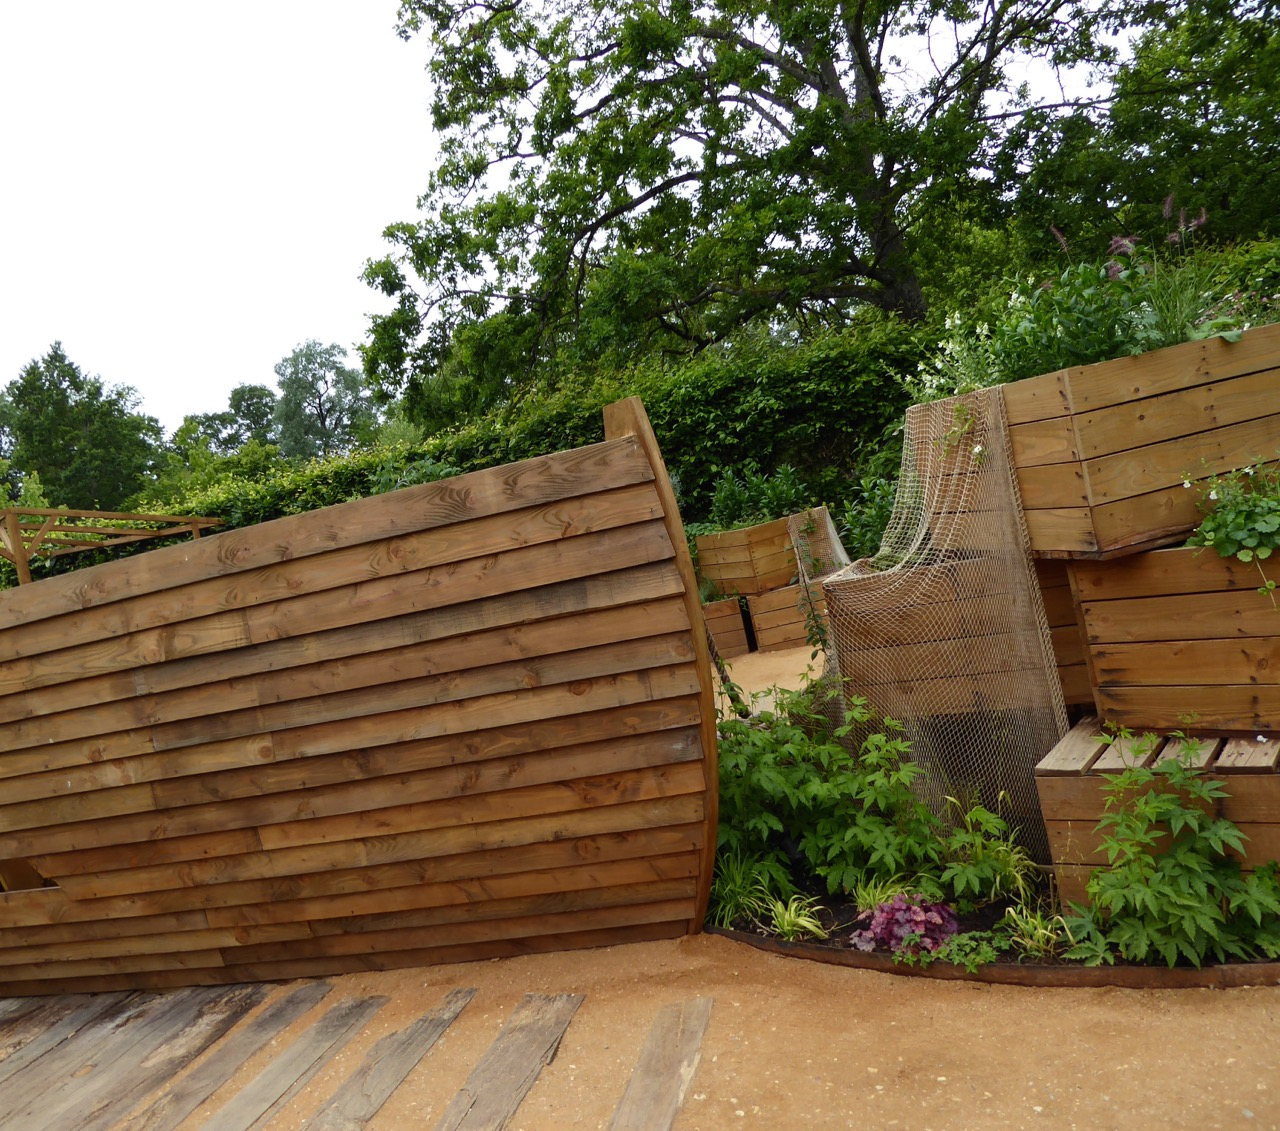 Linnaeus' ark: plants in crates ready to be loaded on the ark